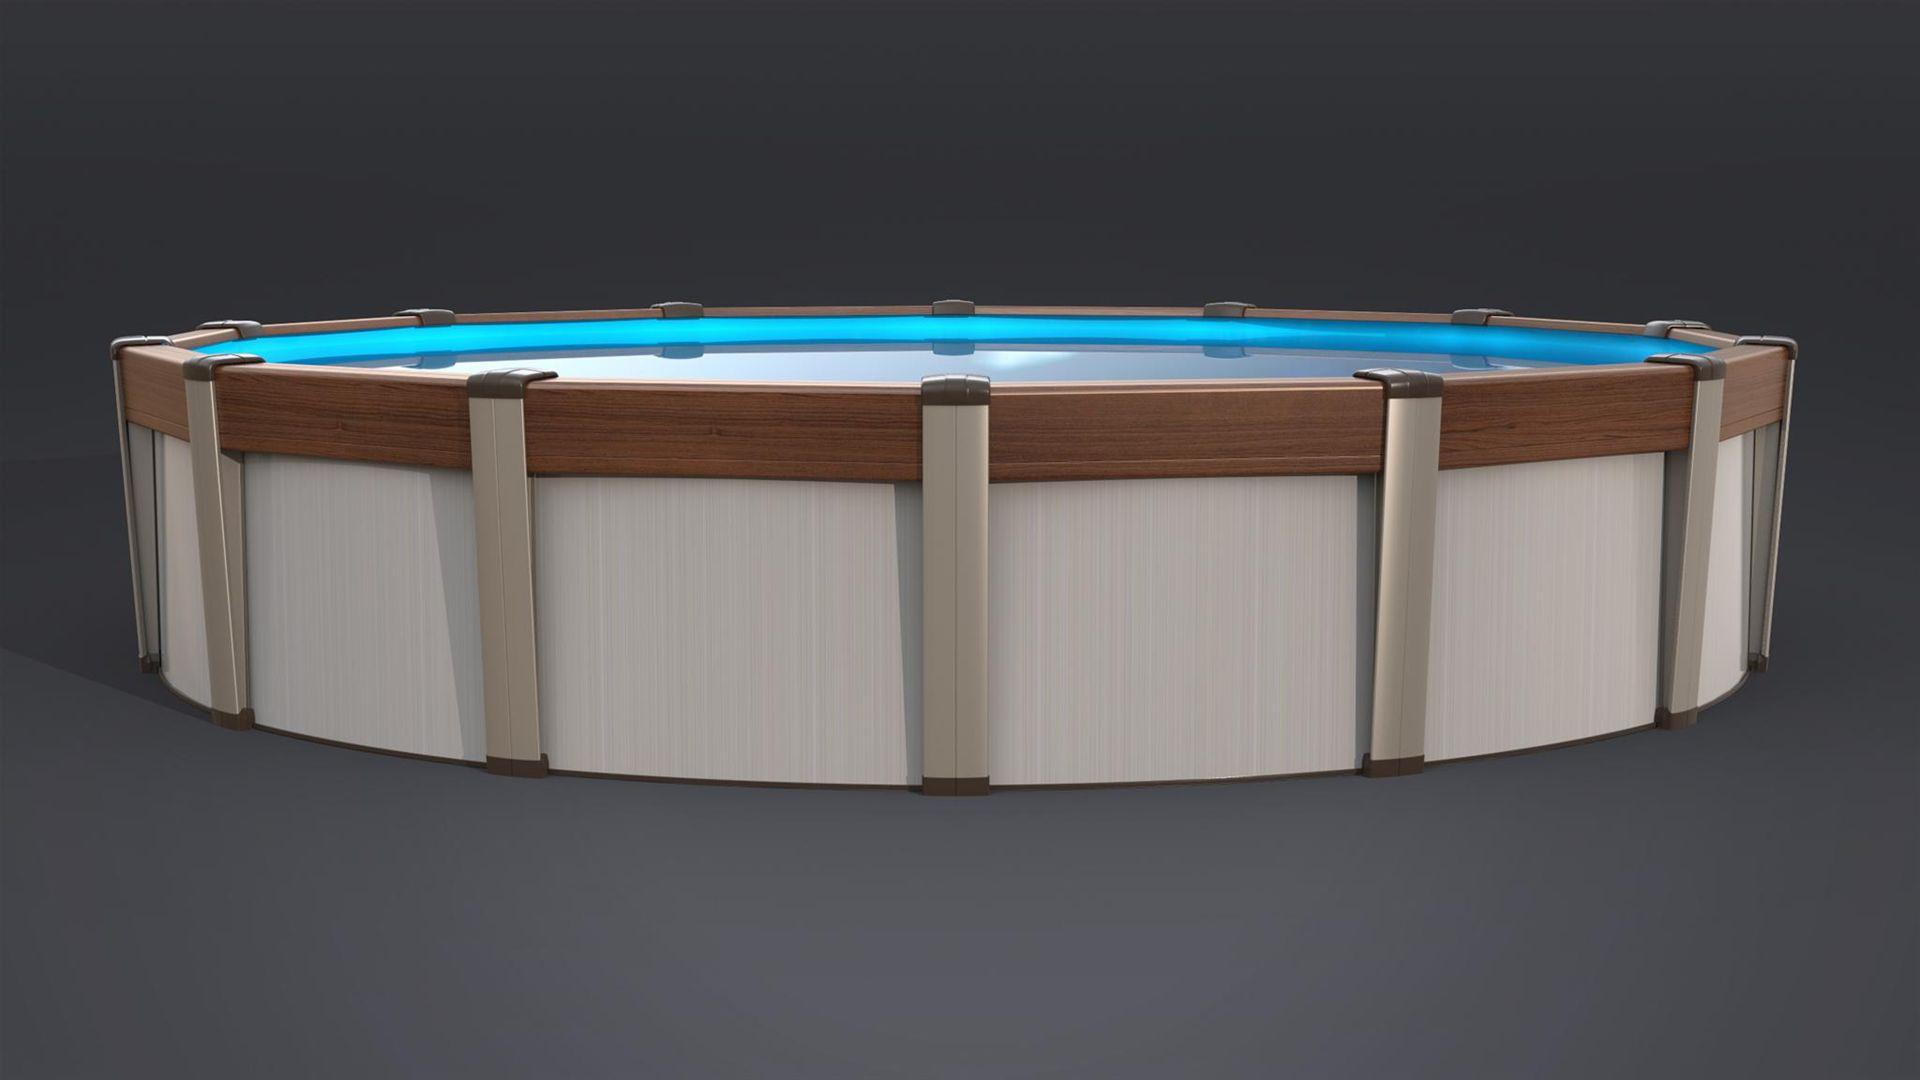 Contempra by Sharkline Pools at Zagers